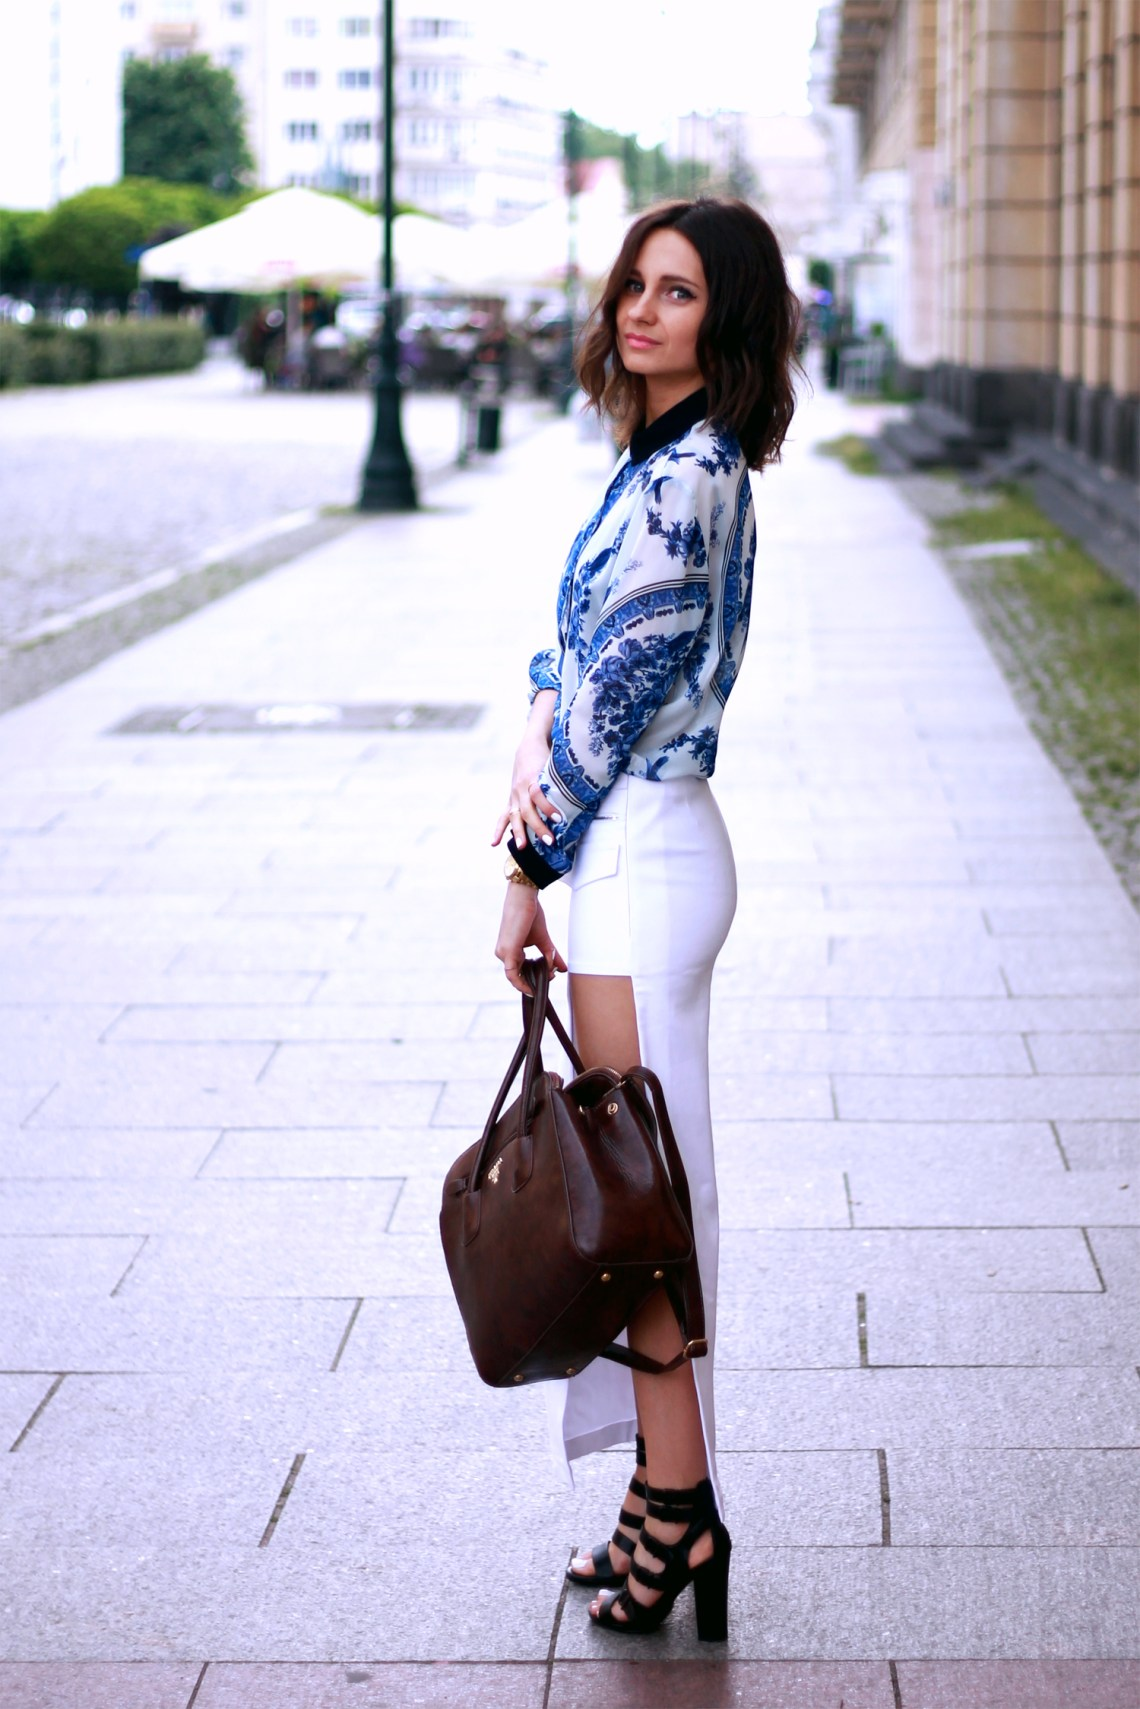 style blogger ootd look tumblr girl fashion trends lookbook chic mohito topshop prada outfit lilis 1